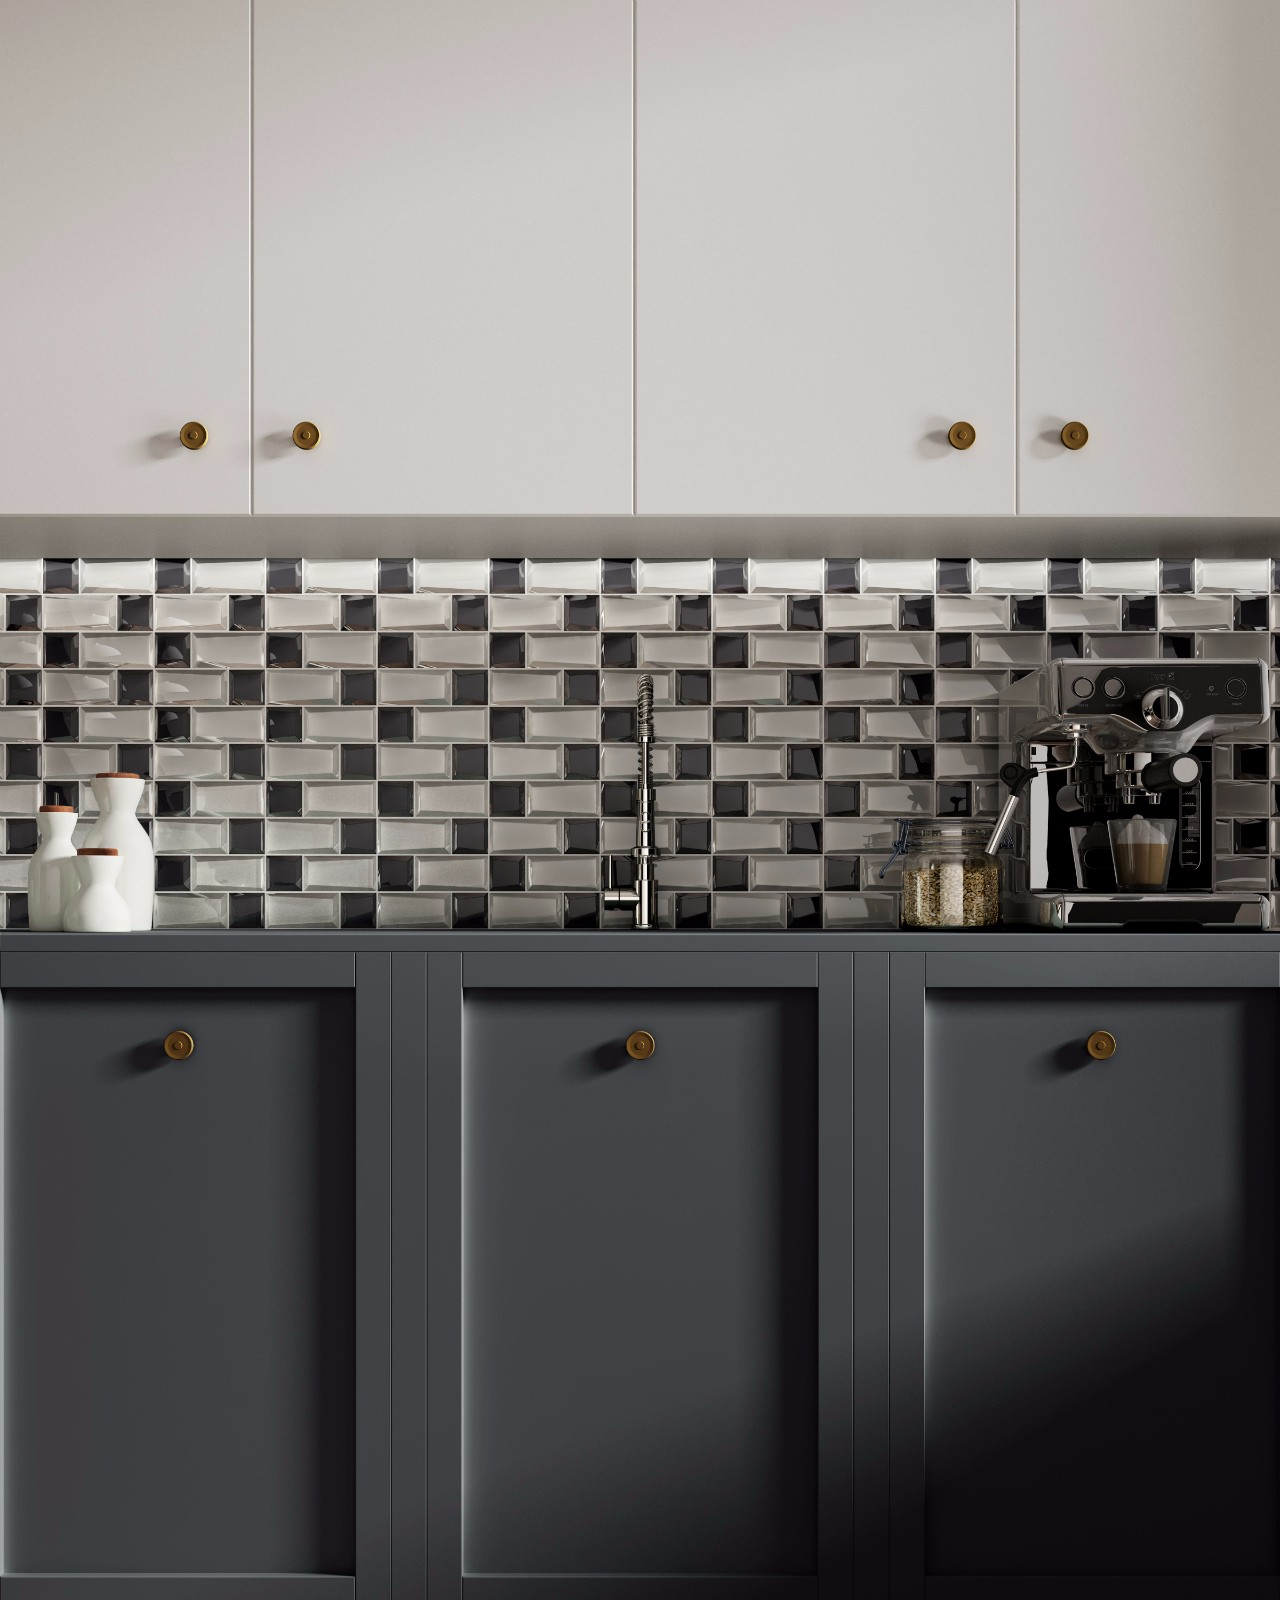 Heng Xing-Glass Metal Tile Factory, White Kitchen Backsplash | Heng Xing-7